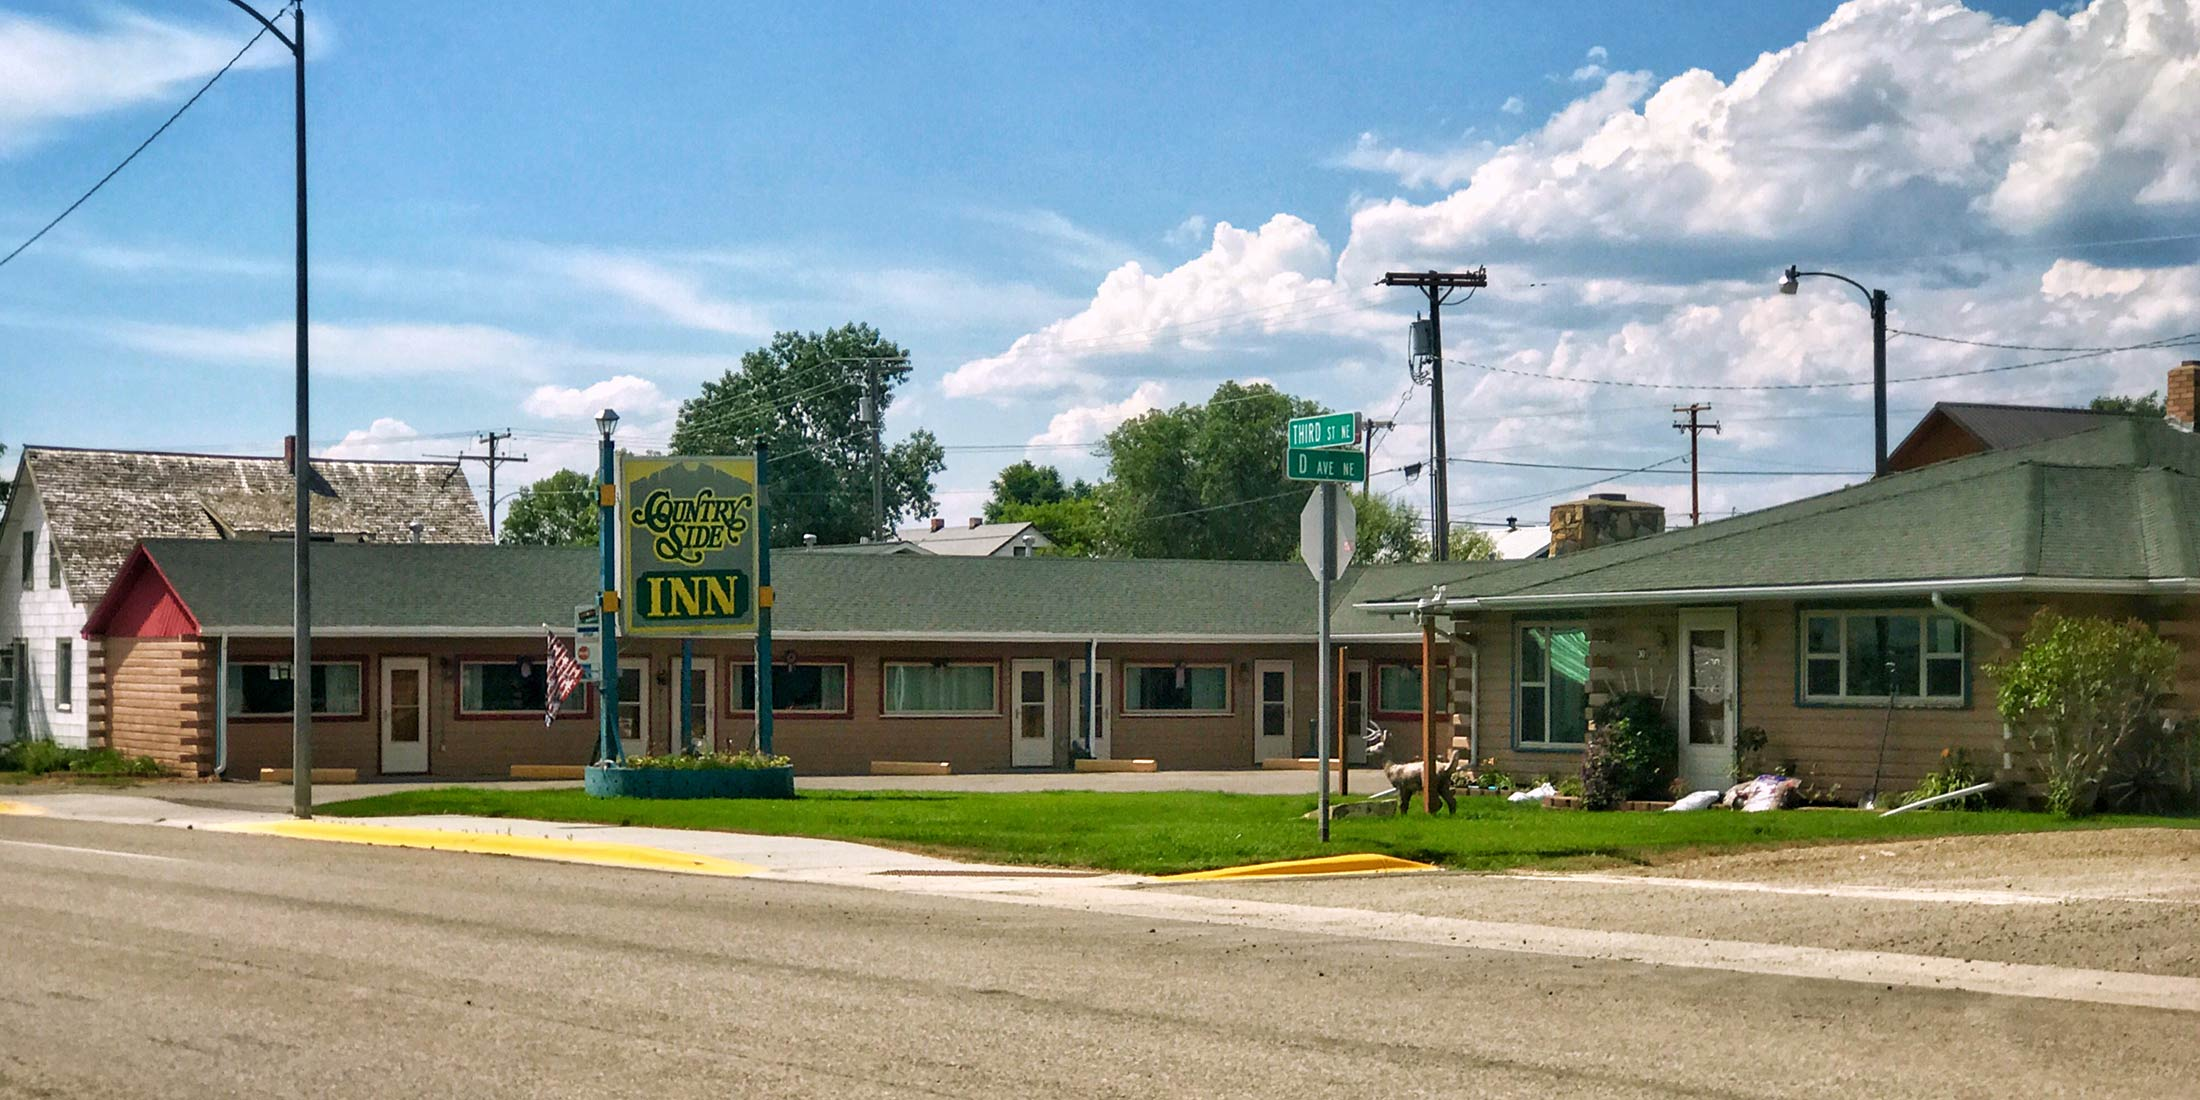 Lodging located on 3rd Street North, Highway 12, in Harlowton, Montana in Wheatland County.